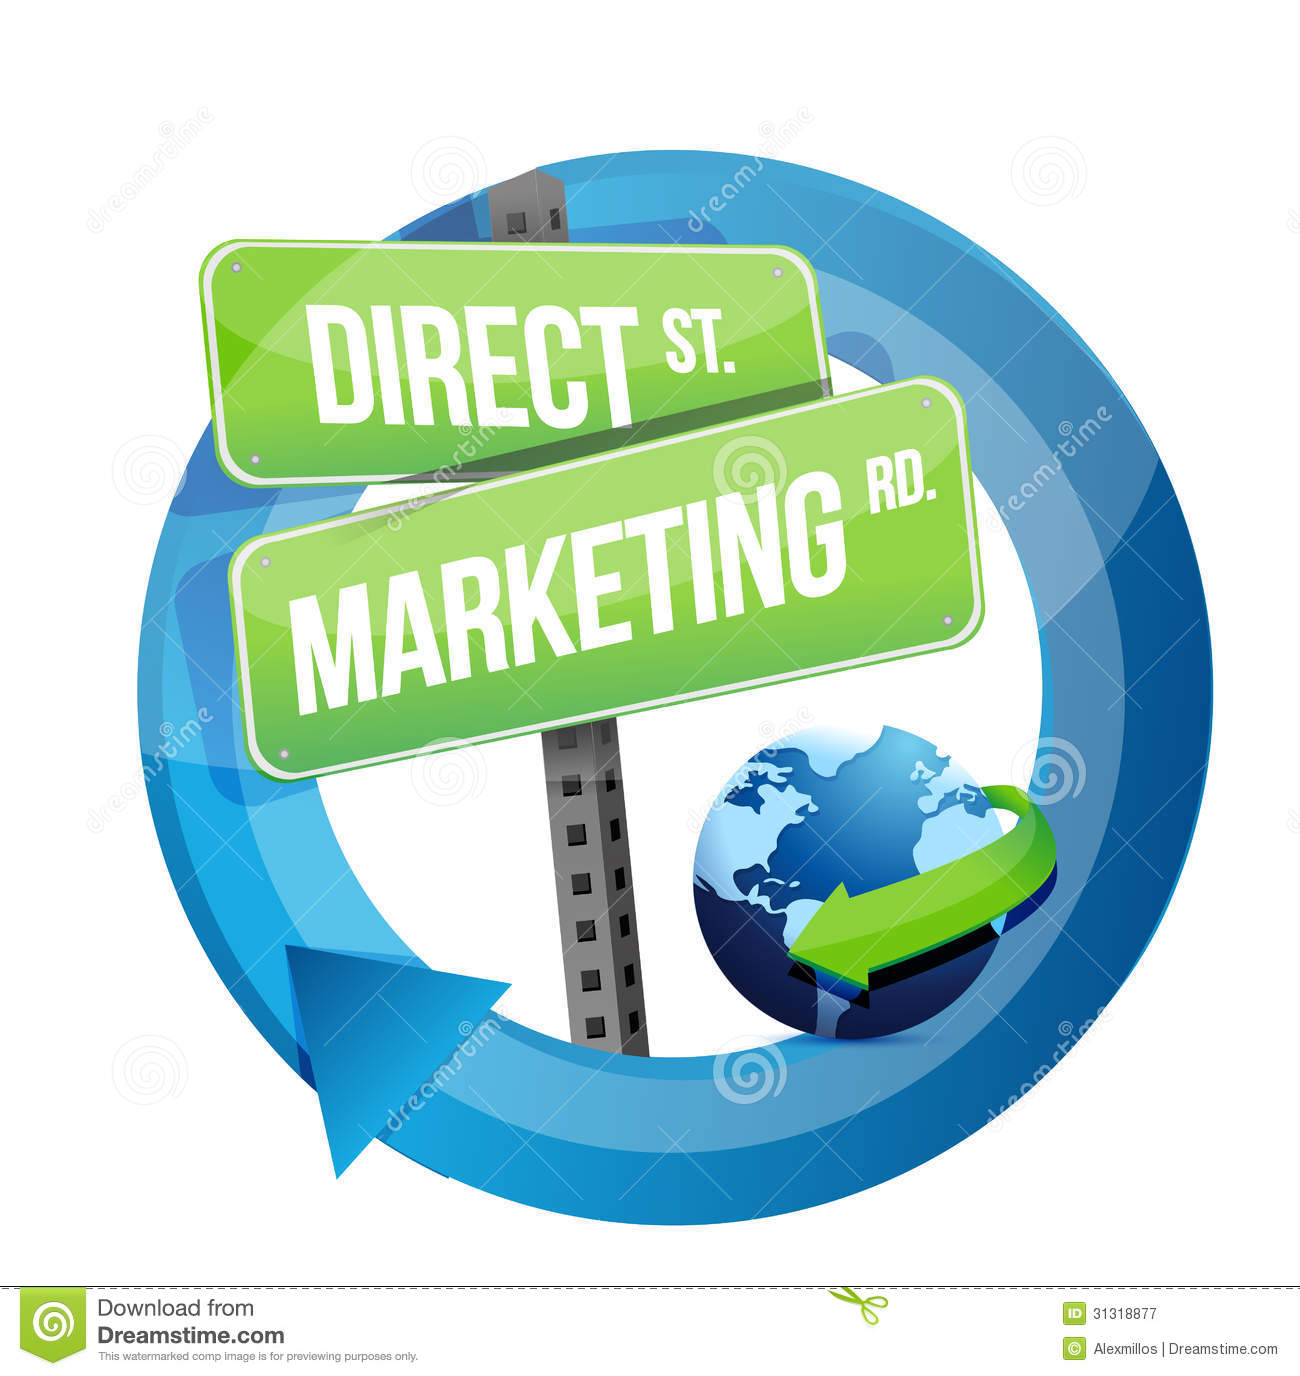 Direct marketing road sign and globe illustration royalty for Direct from the designers